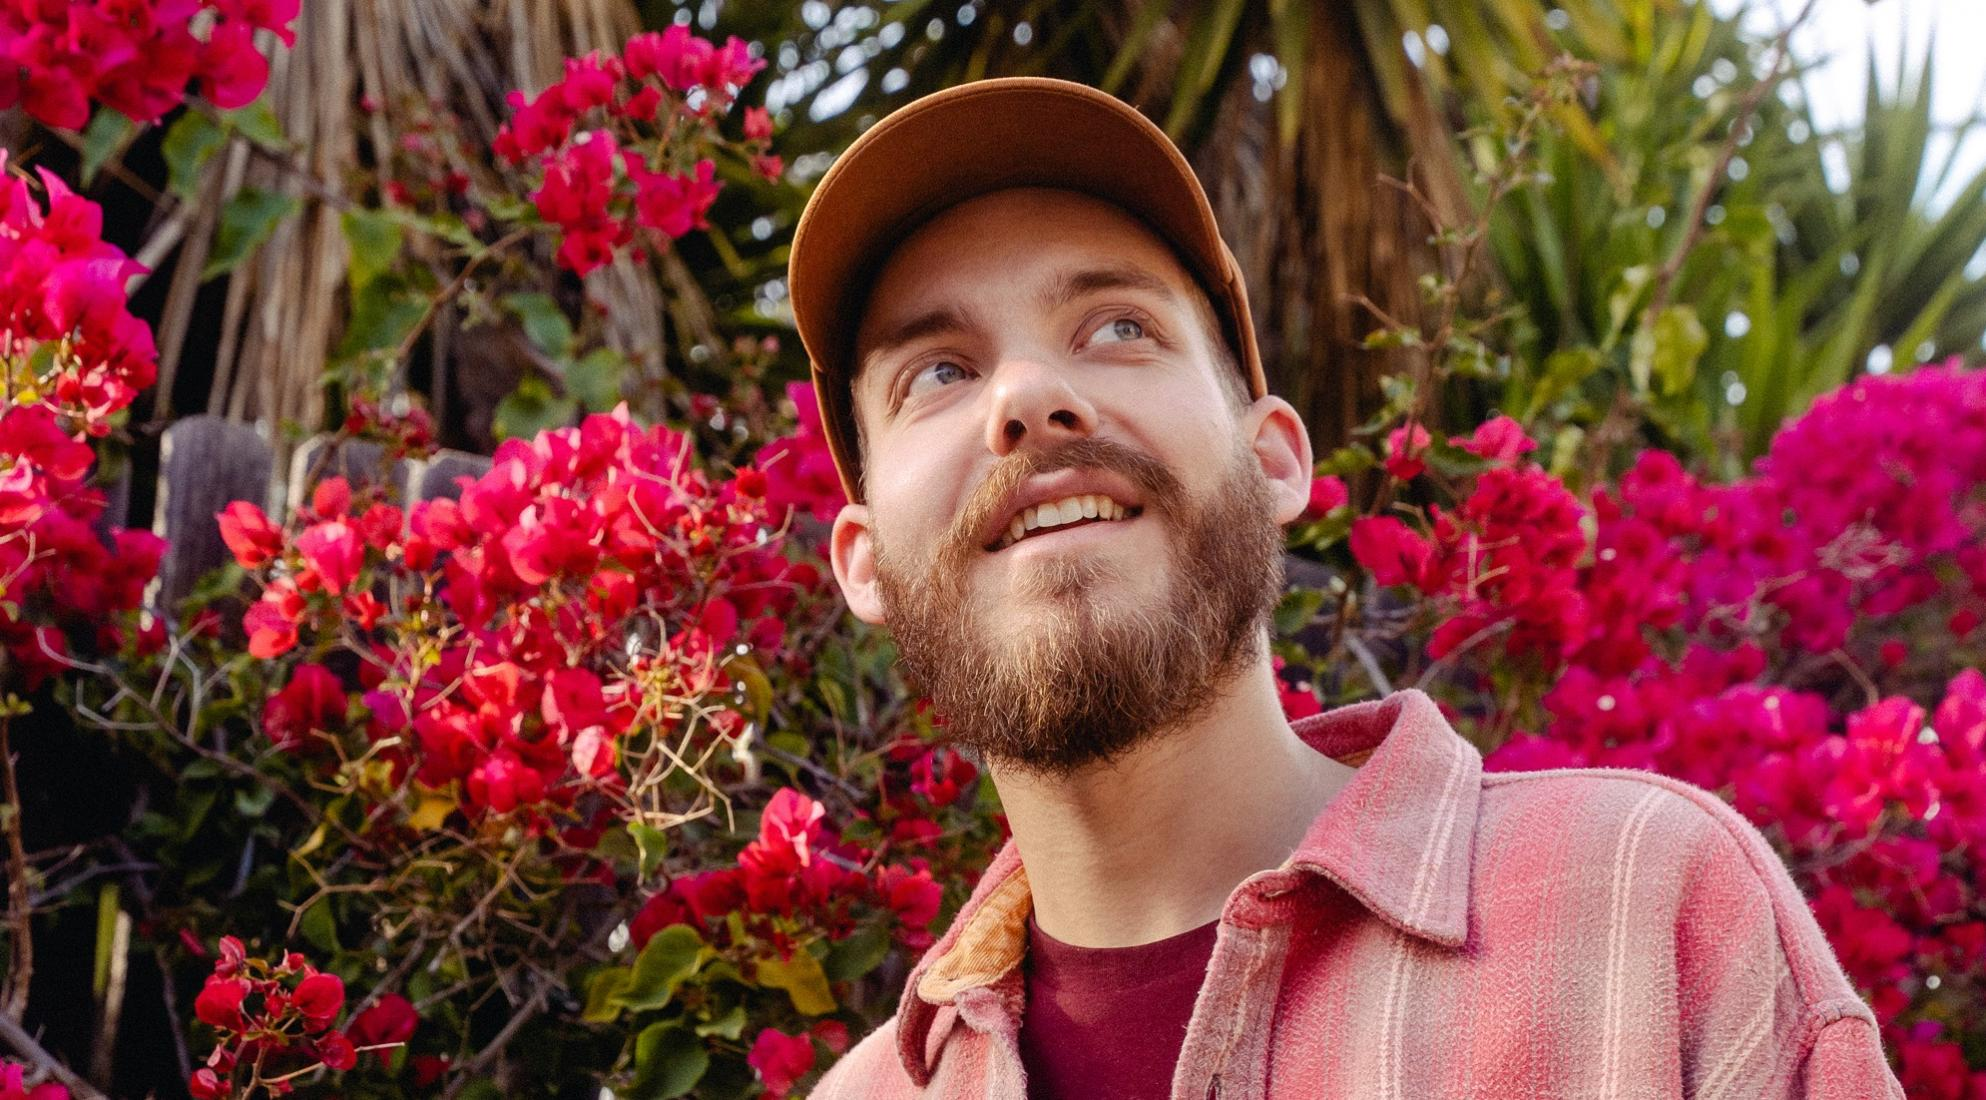 San Holo smiles in front of flowers